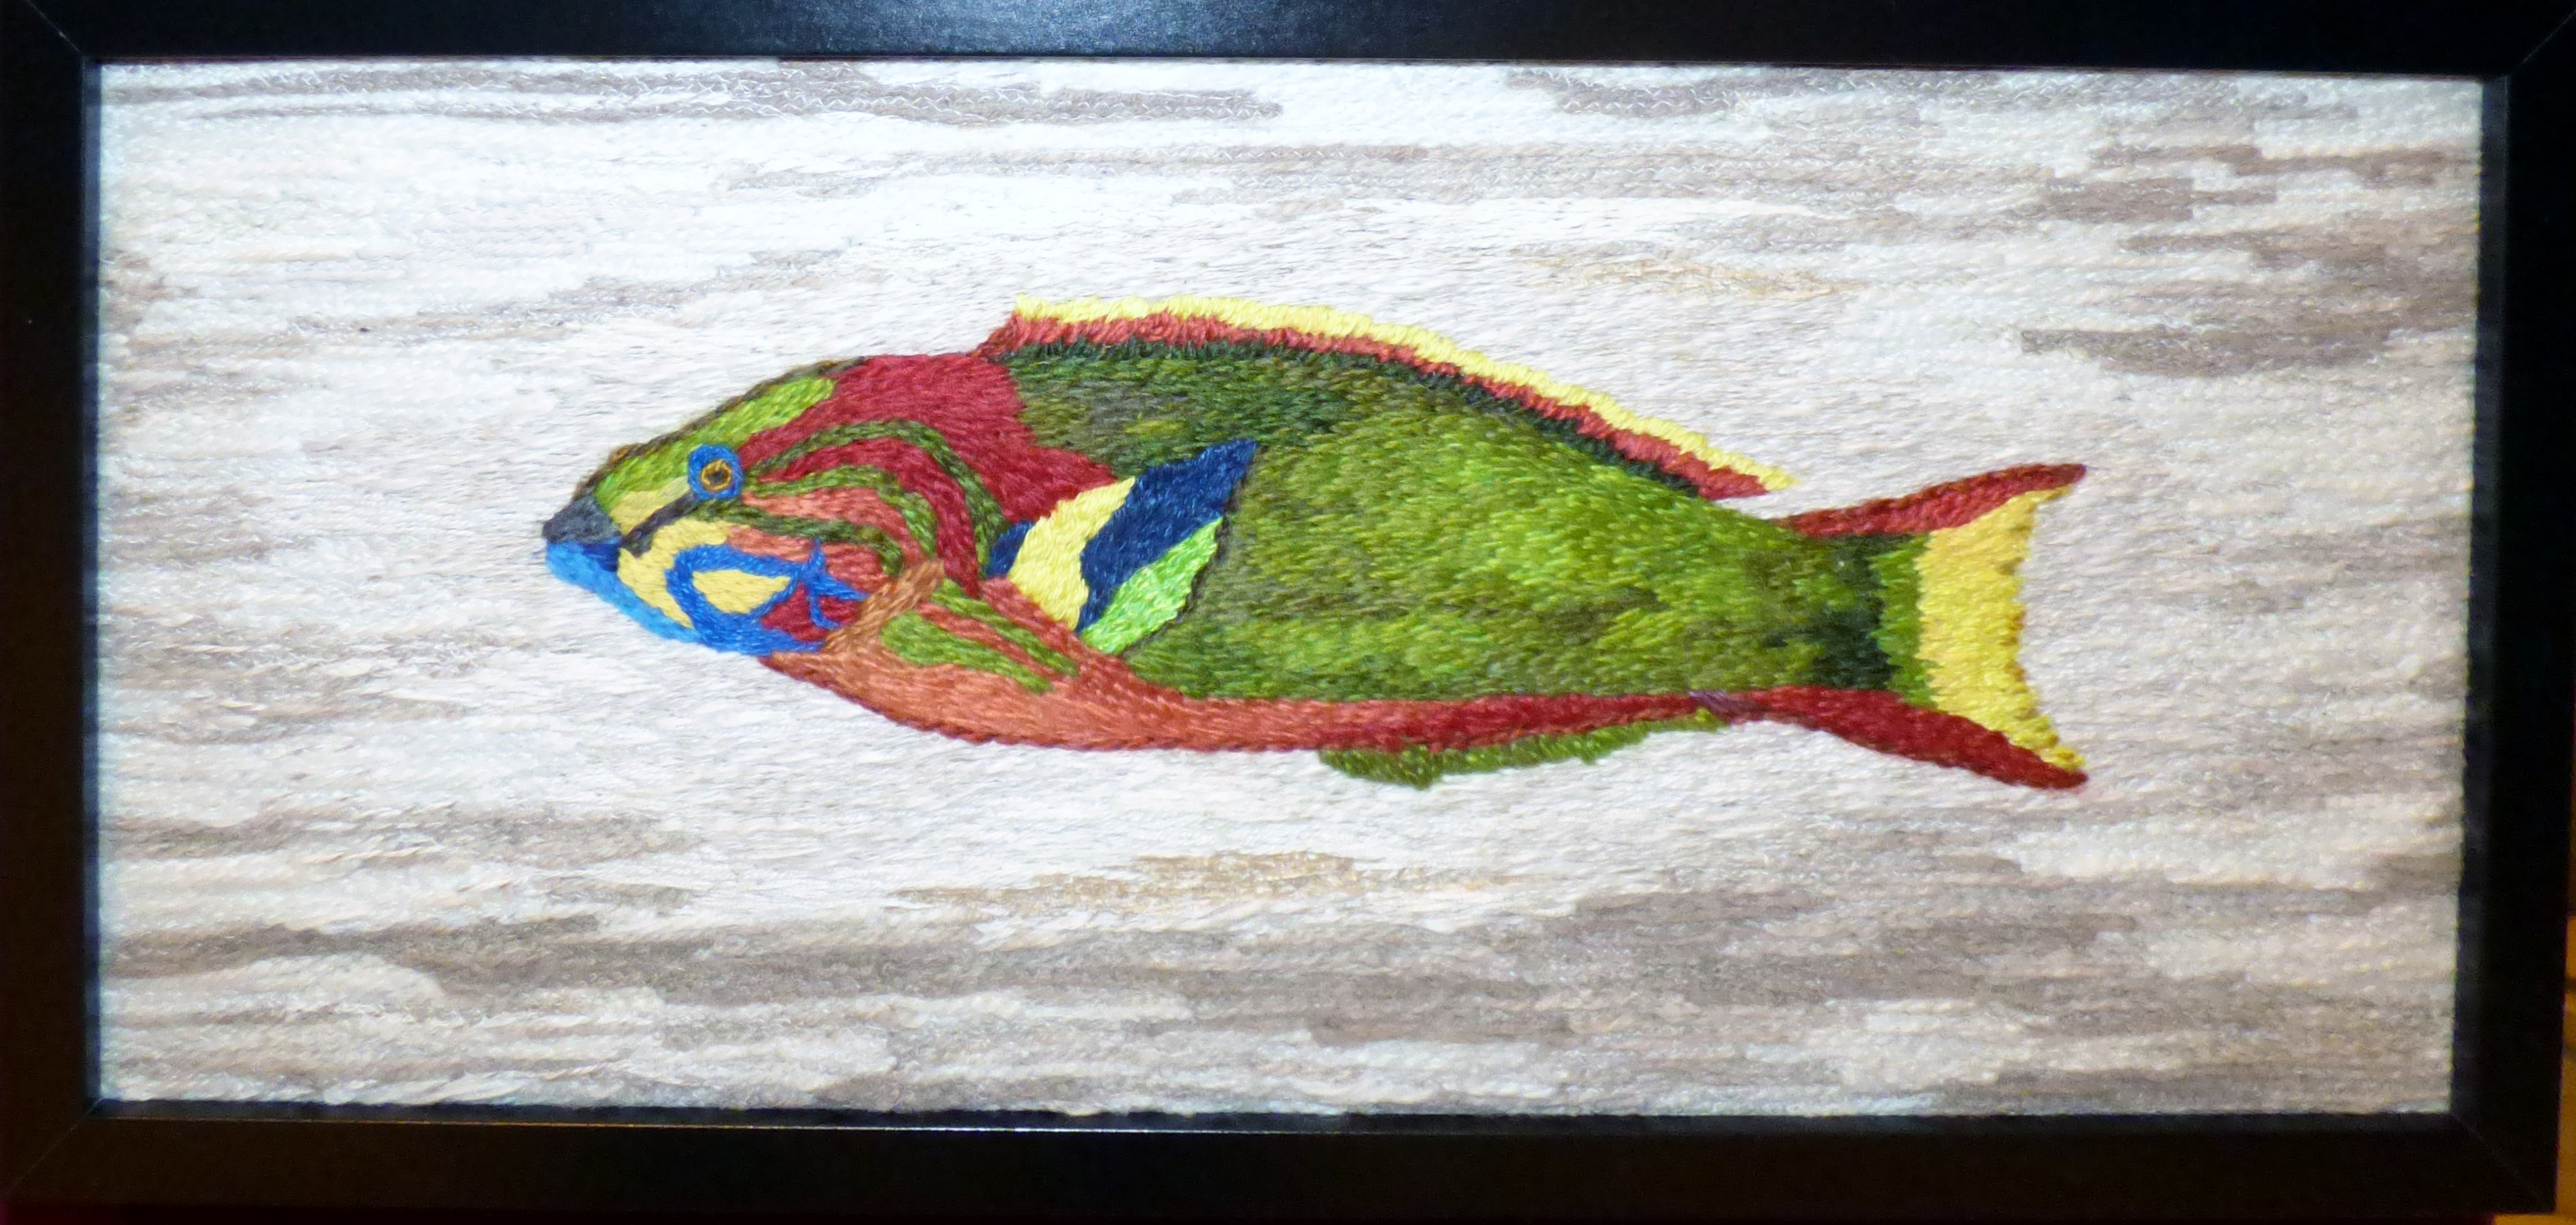 GREEN MOON WRASSE by Patti Owen, hand embroidery,  Endeavour exhibition, Liverpool Cathedral, Sept 2018